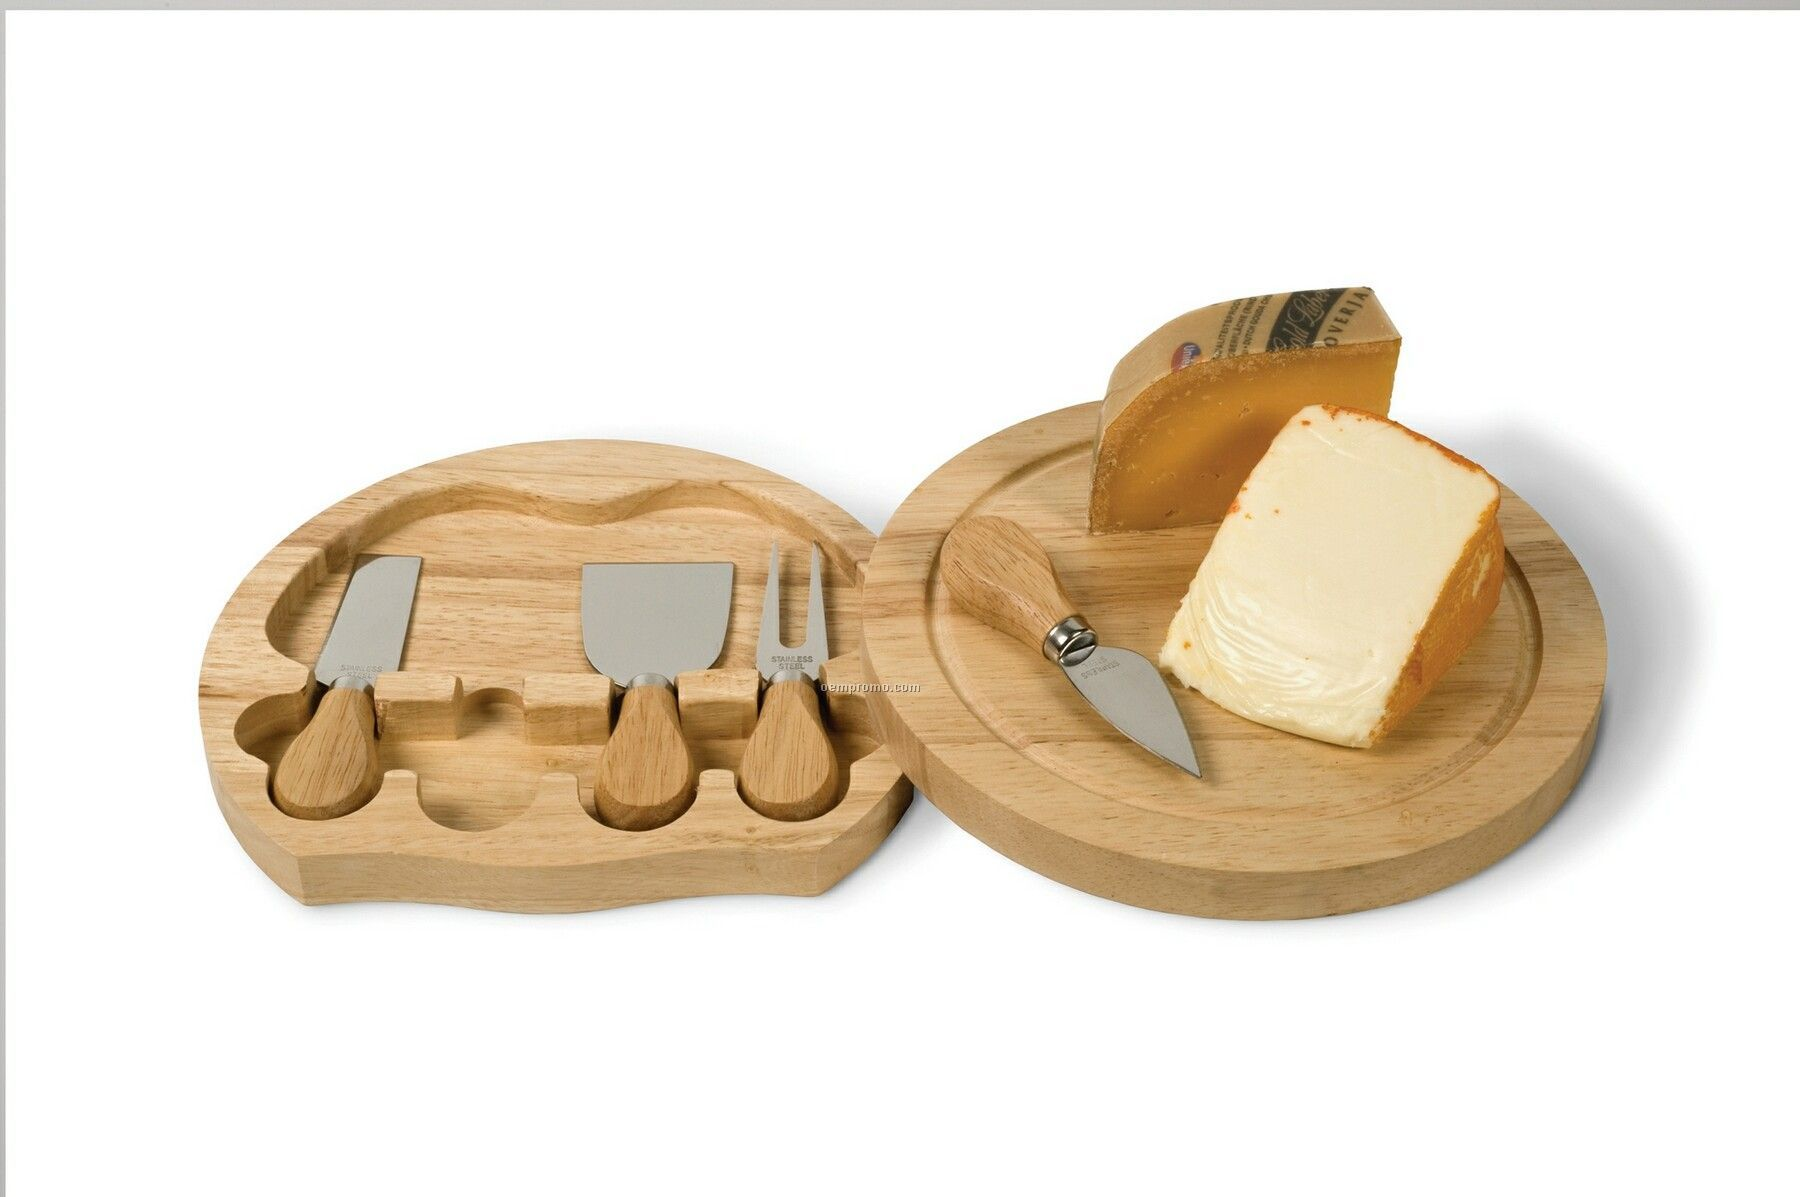 Large Swivel Cheese Board 5 Piece Set